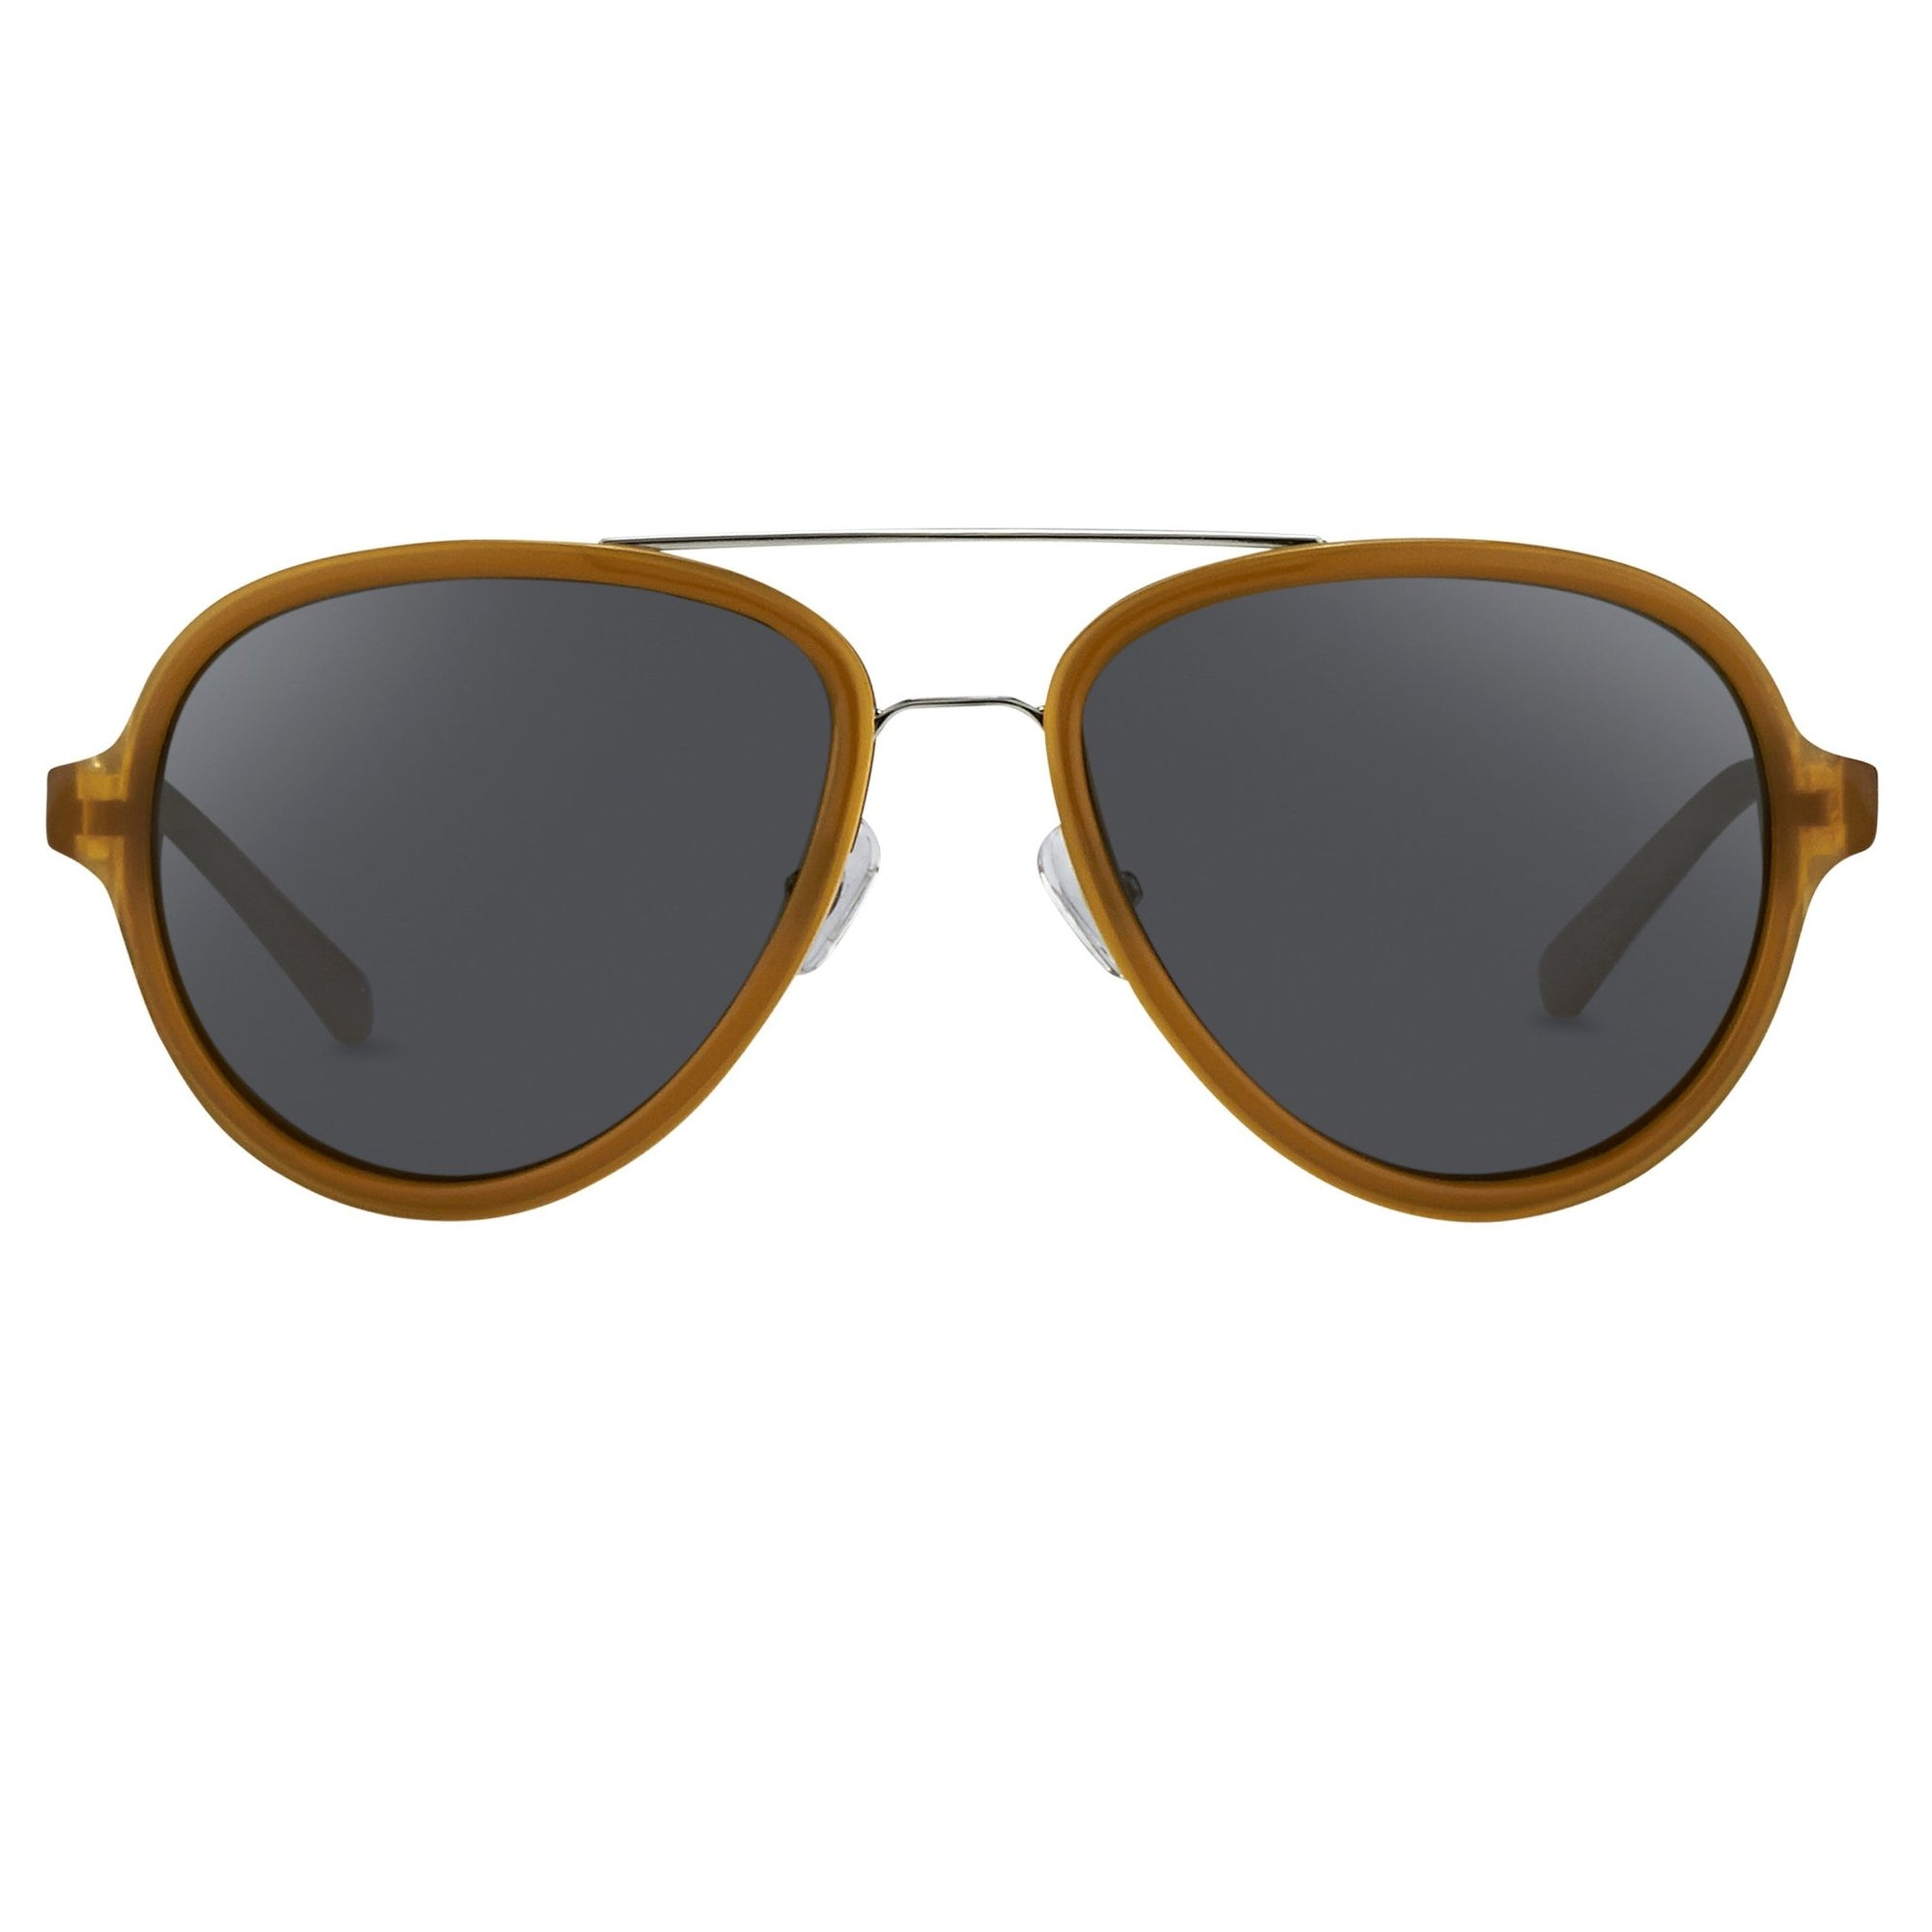 Phillip Lim Sunglasses Honey Silver and Fog Green Lenses Category 3 - PL16C30SUN - Watches & Crystals